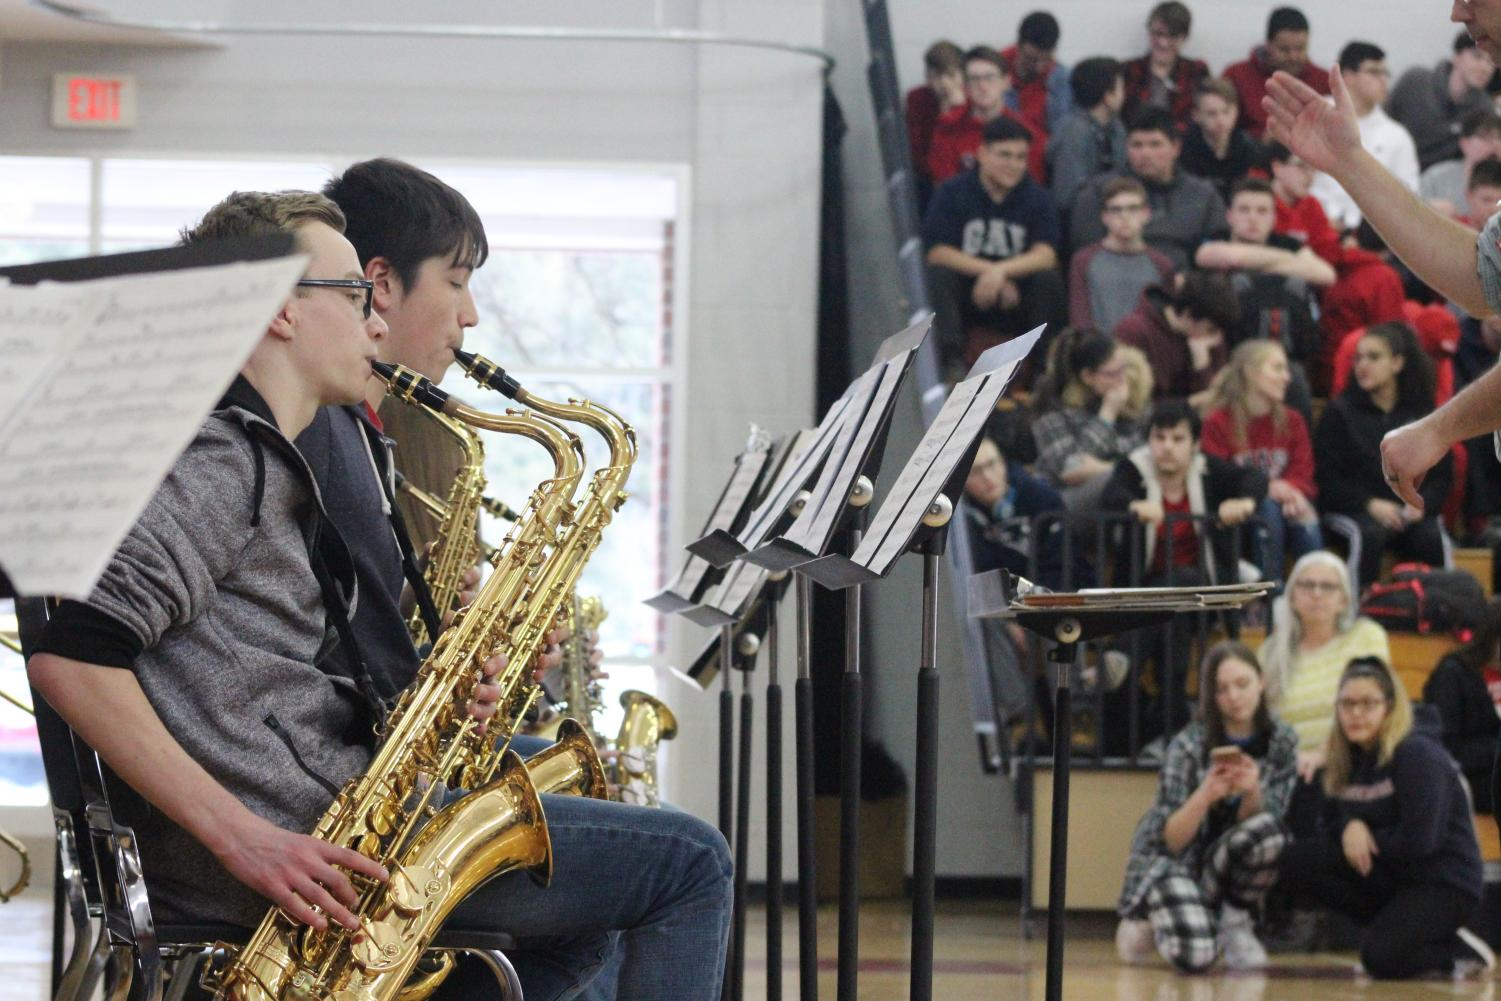 Saxophones+carry+out+the+song+%7Cby+Brianna+Devlin